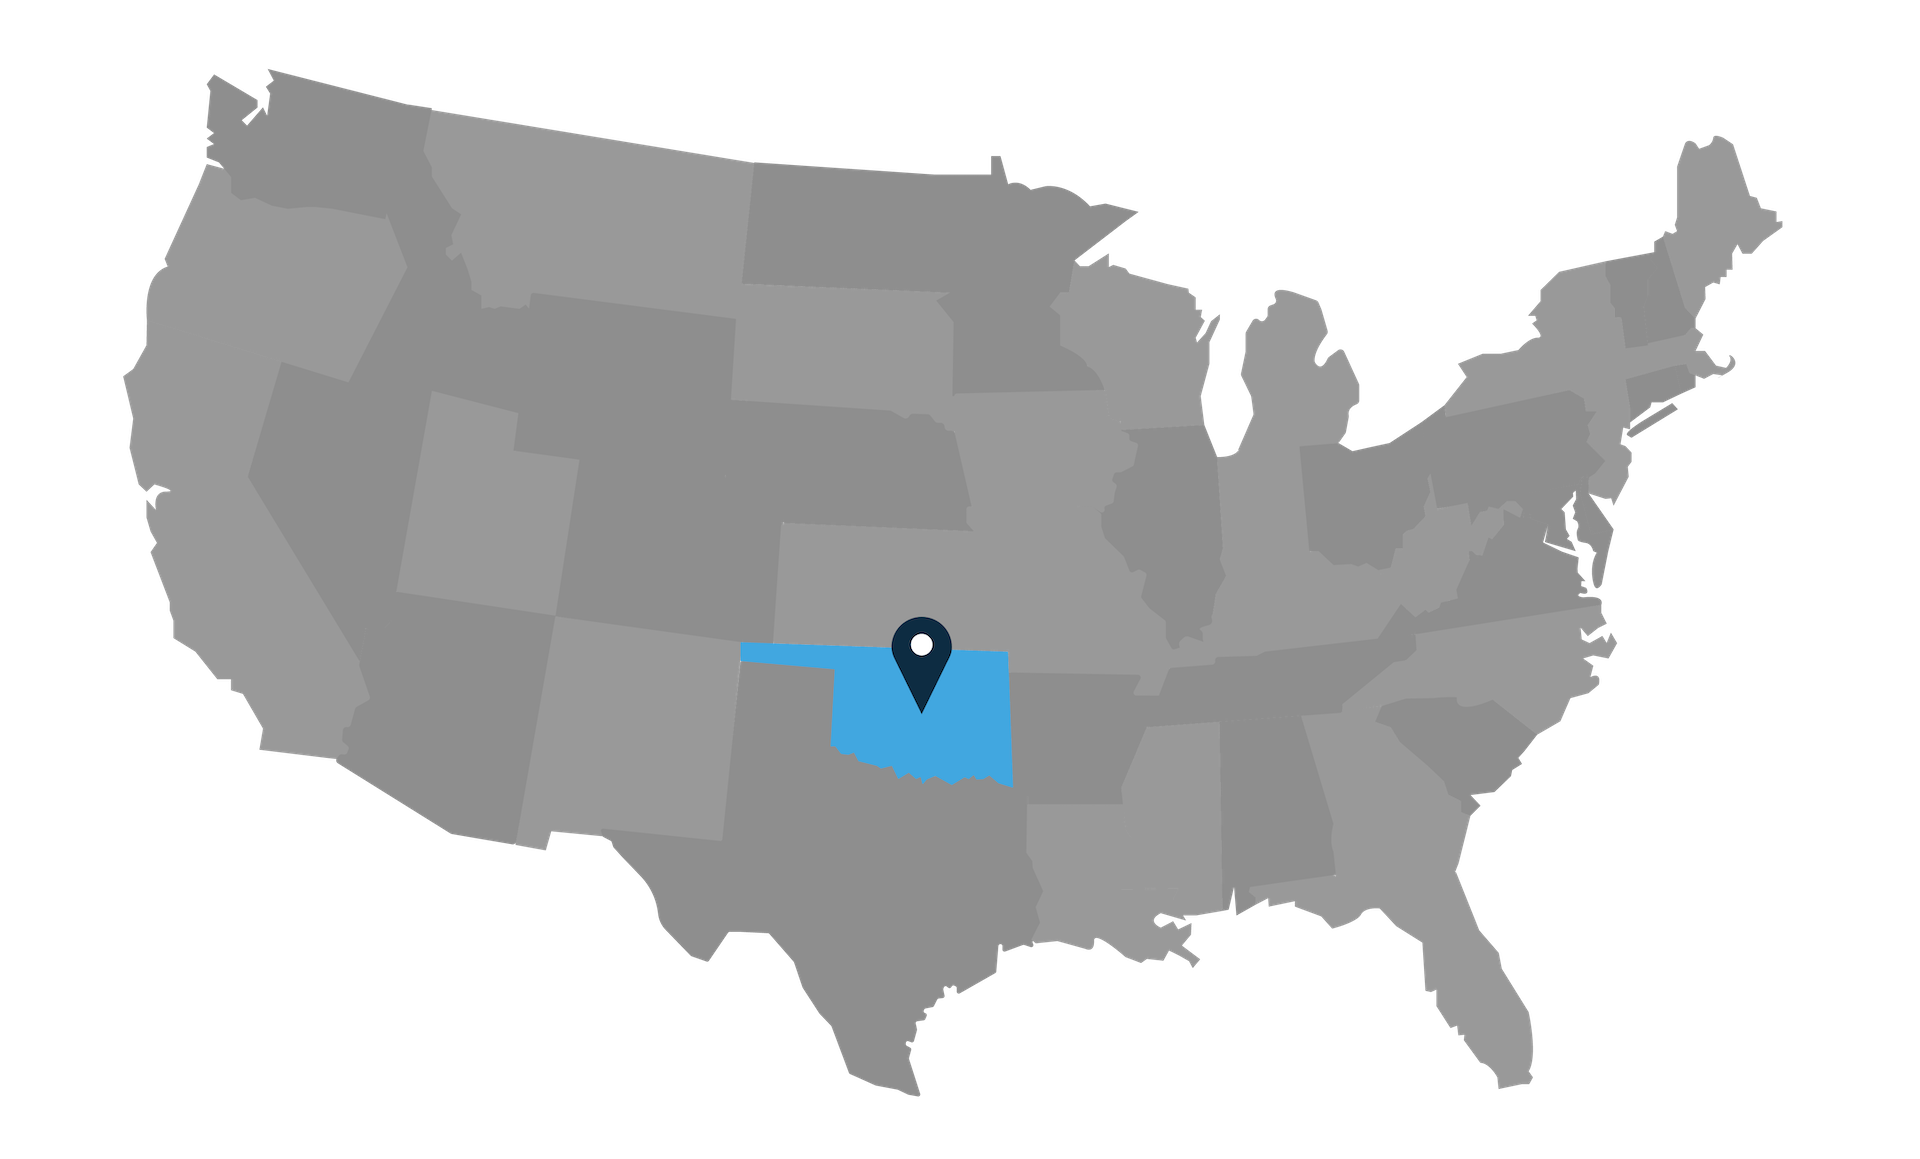 map of united states with usshipshop location